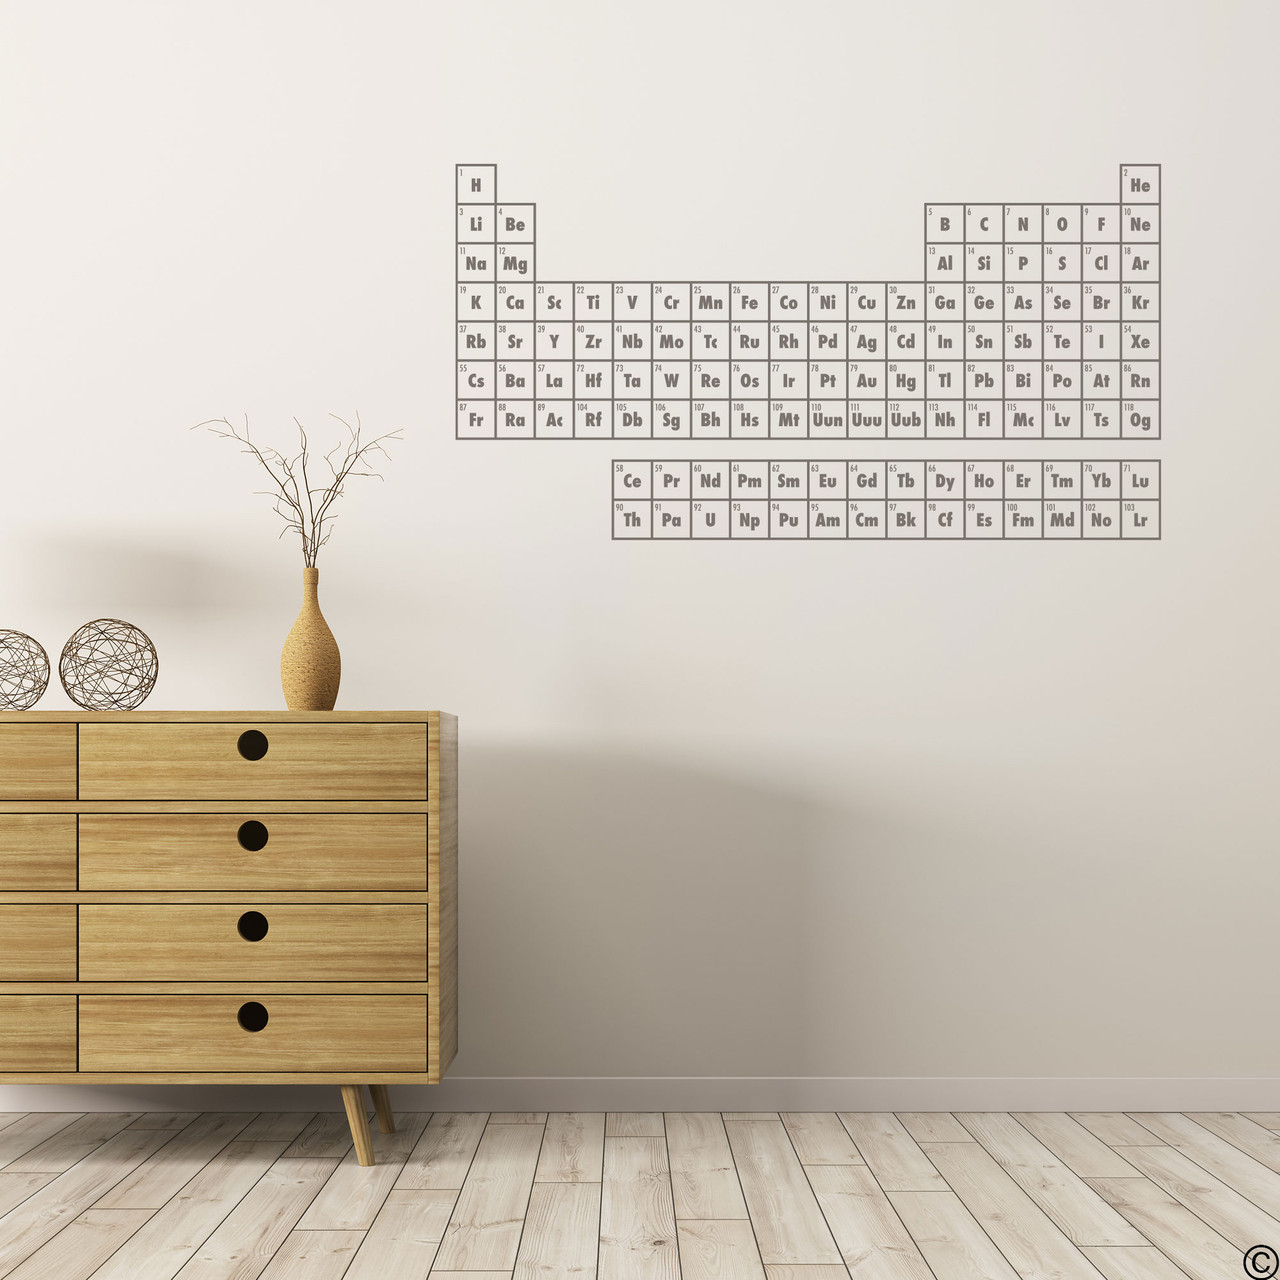 The Periodic Table of Elements wall decal shown here in limited edition castle grey vinyl.